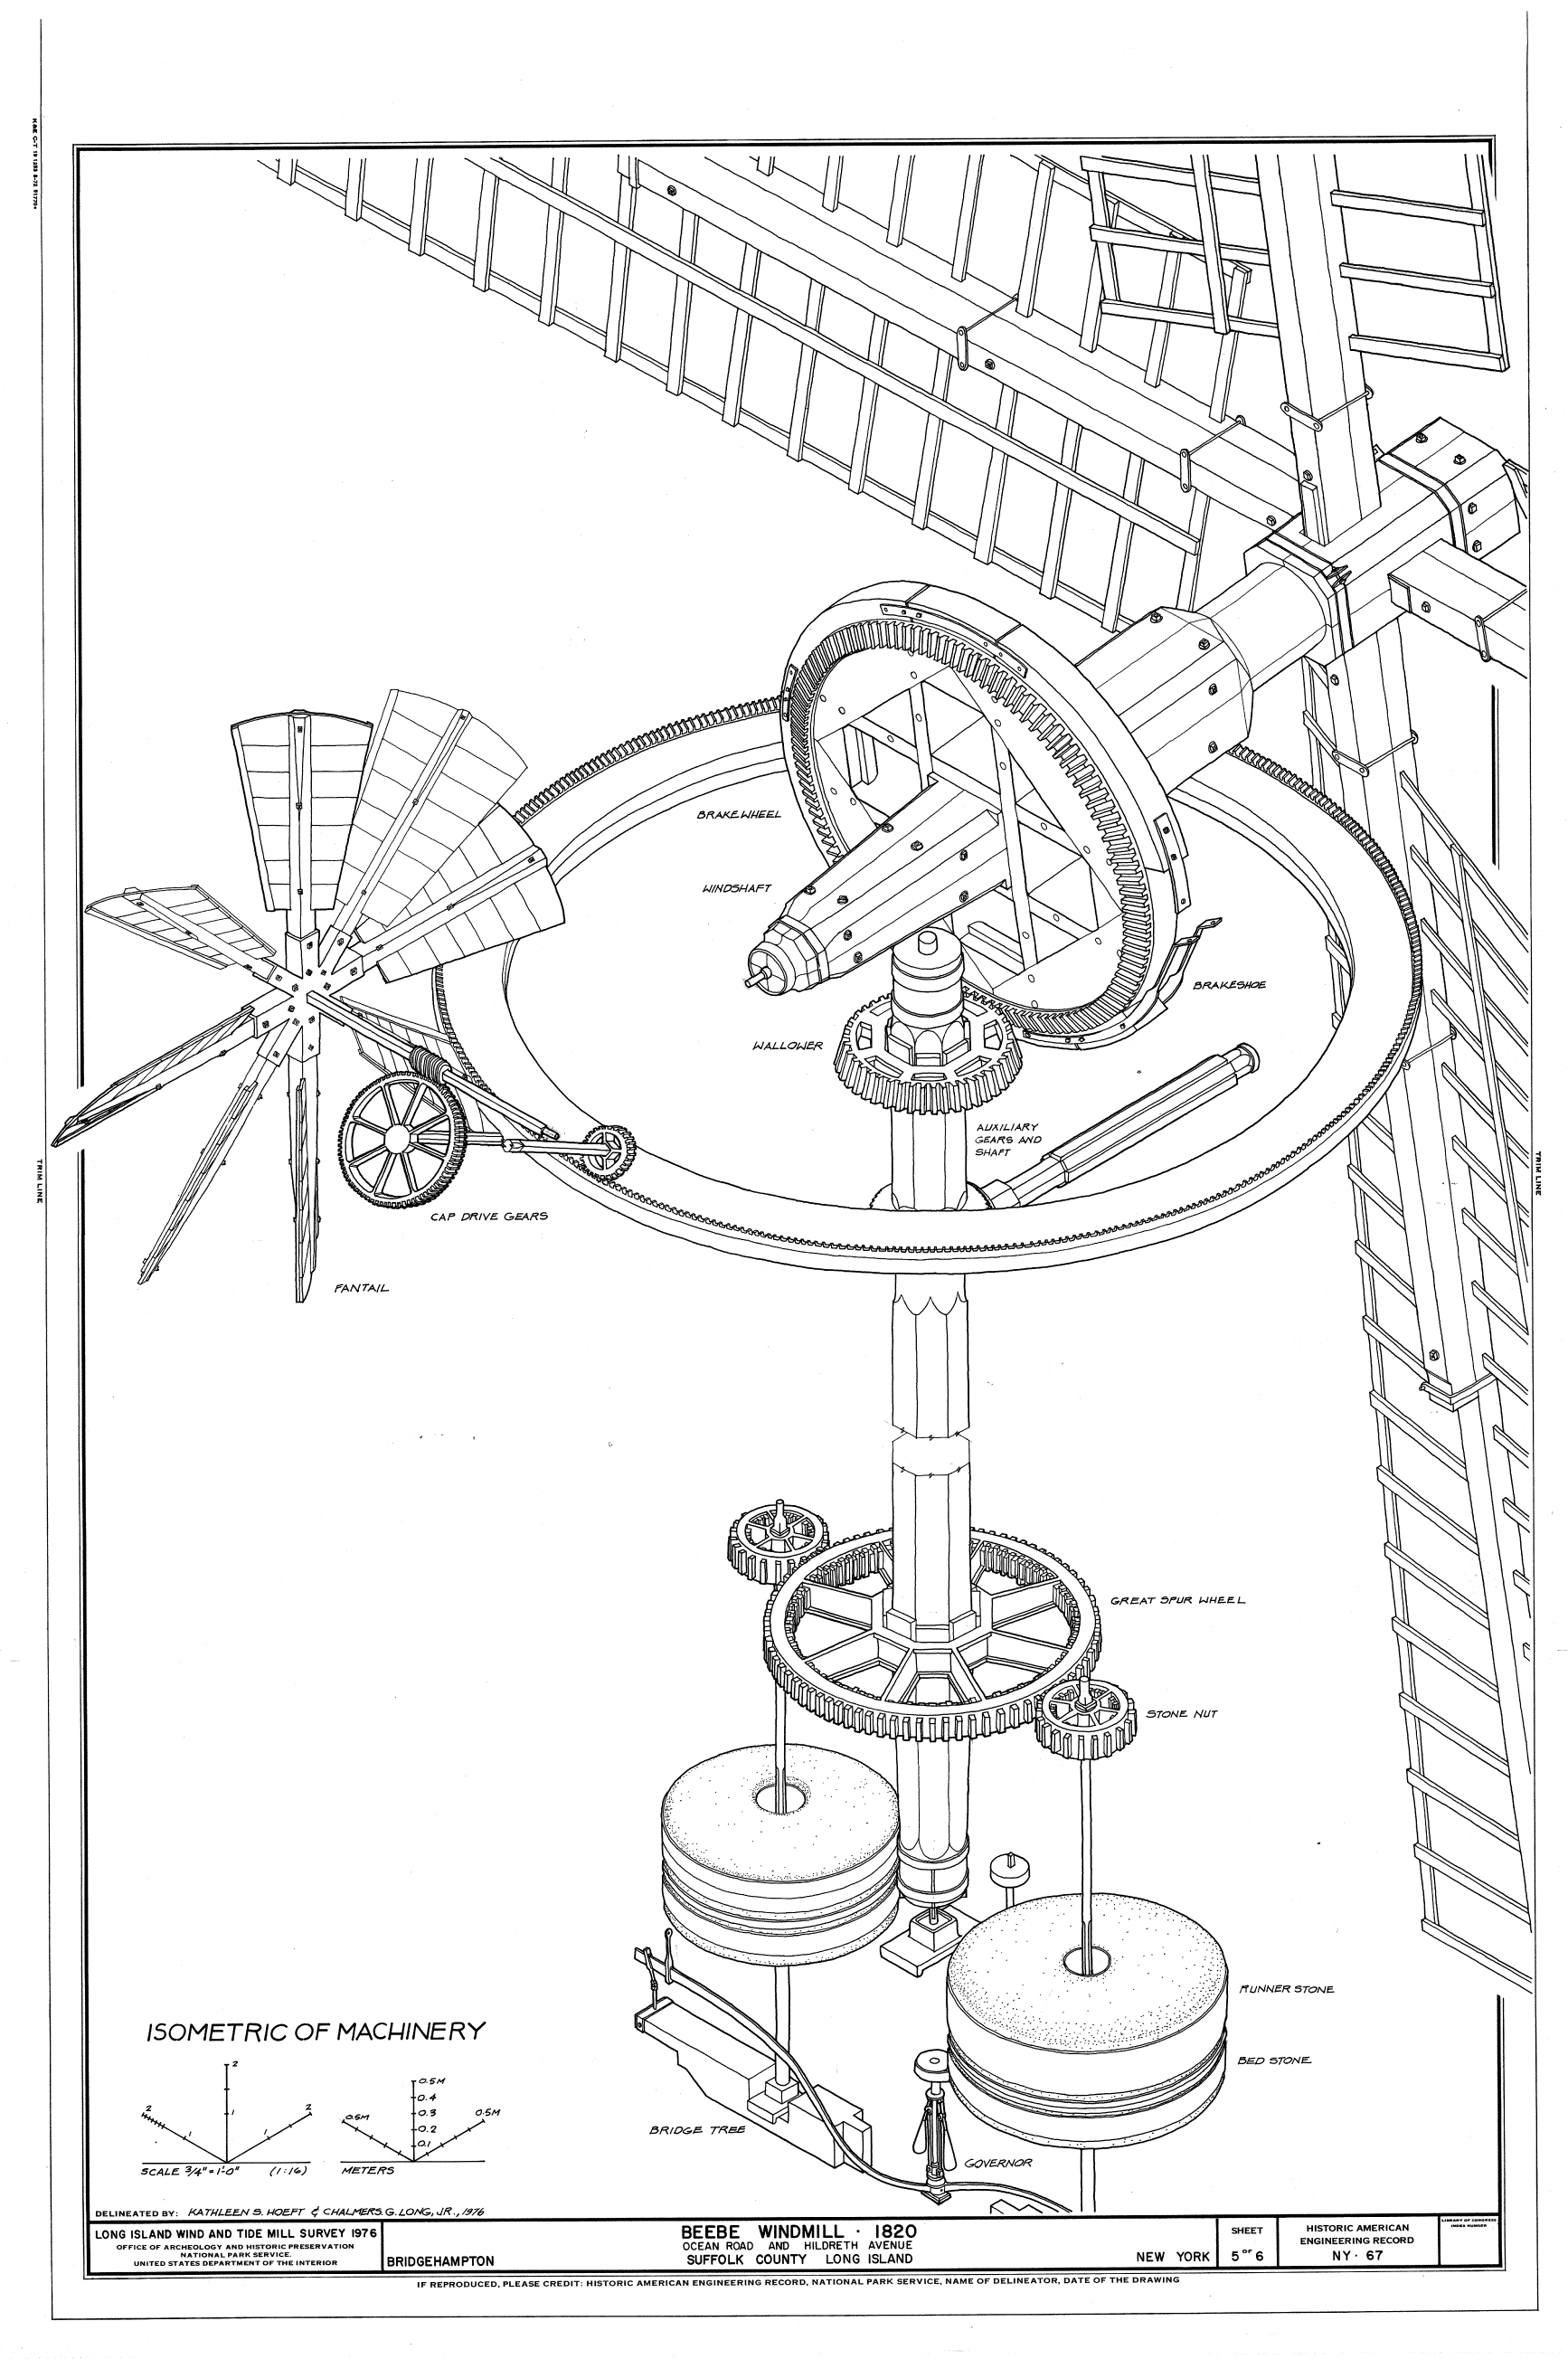 Beautiful Windmill Schematic!